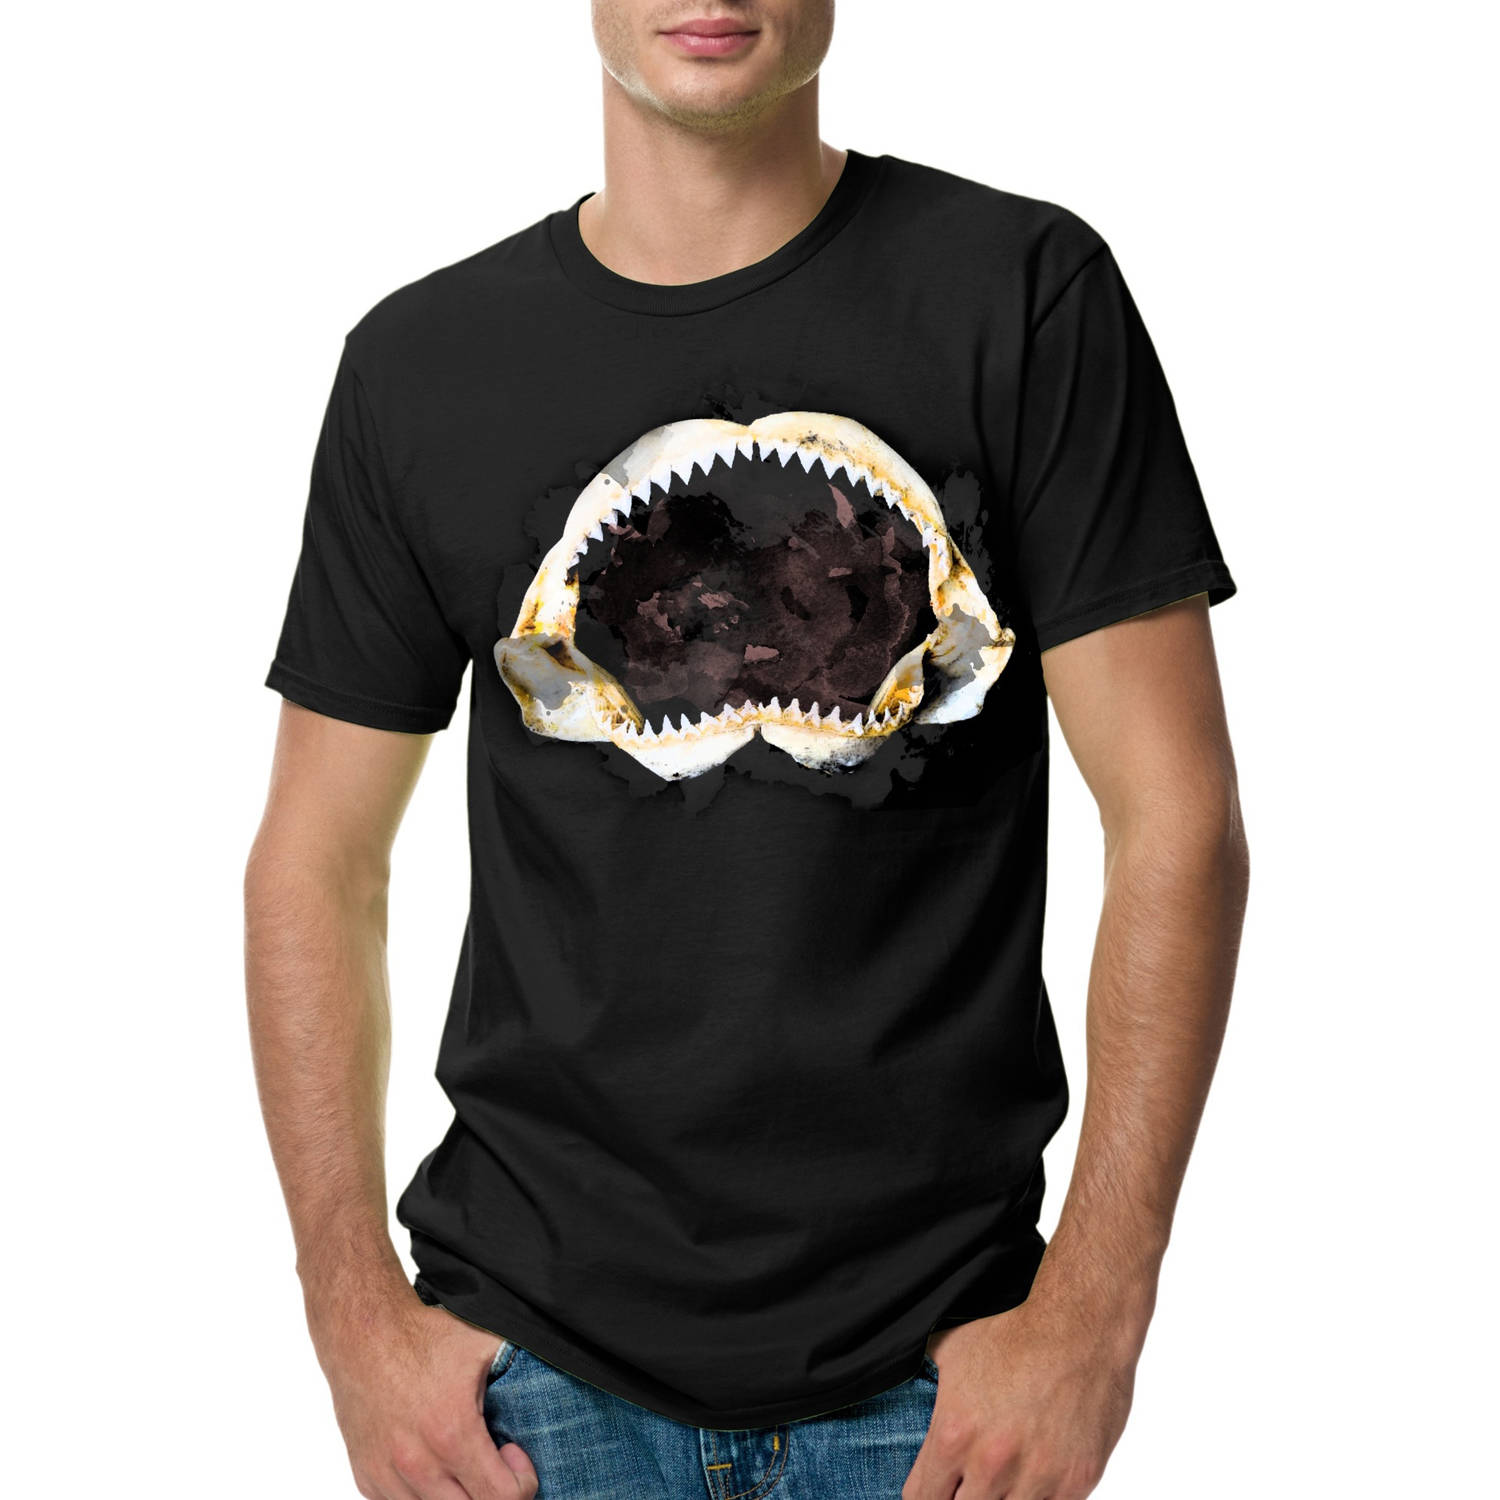 Hanes Big Men's Lightweight Graphic Tee - Vintage Cali Collection